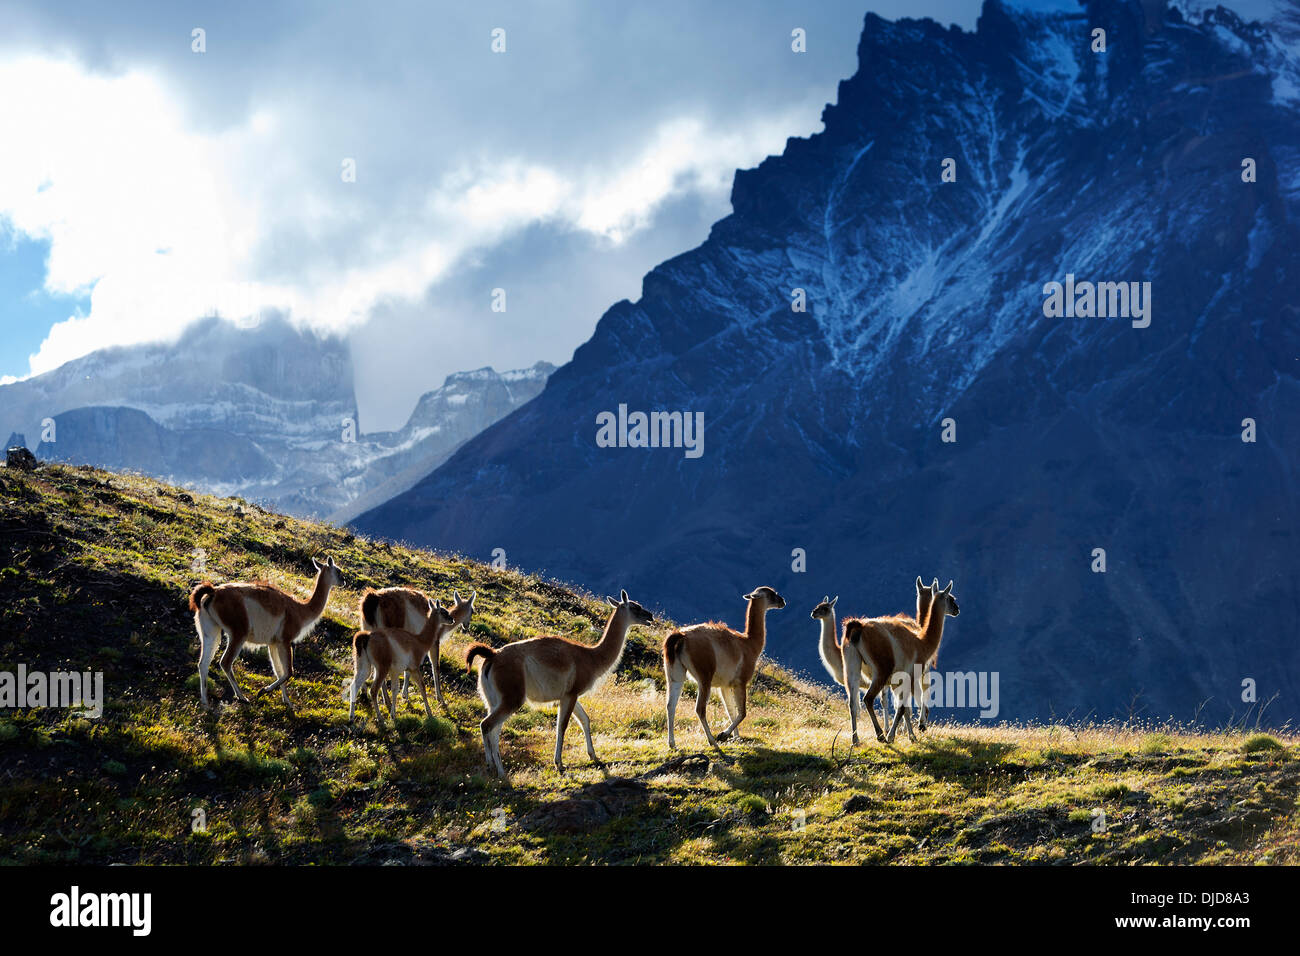 Small group of Guanaco(Lama guanicoe) standing on the hillside with Torres del Paine mountains in the background.Patagonia.Chile - Stock Image